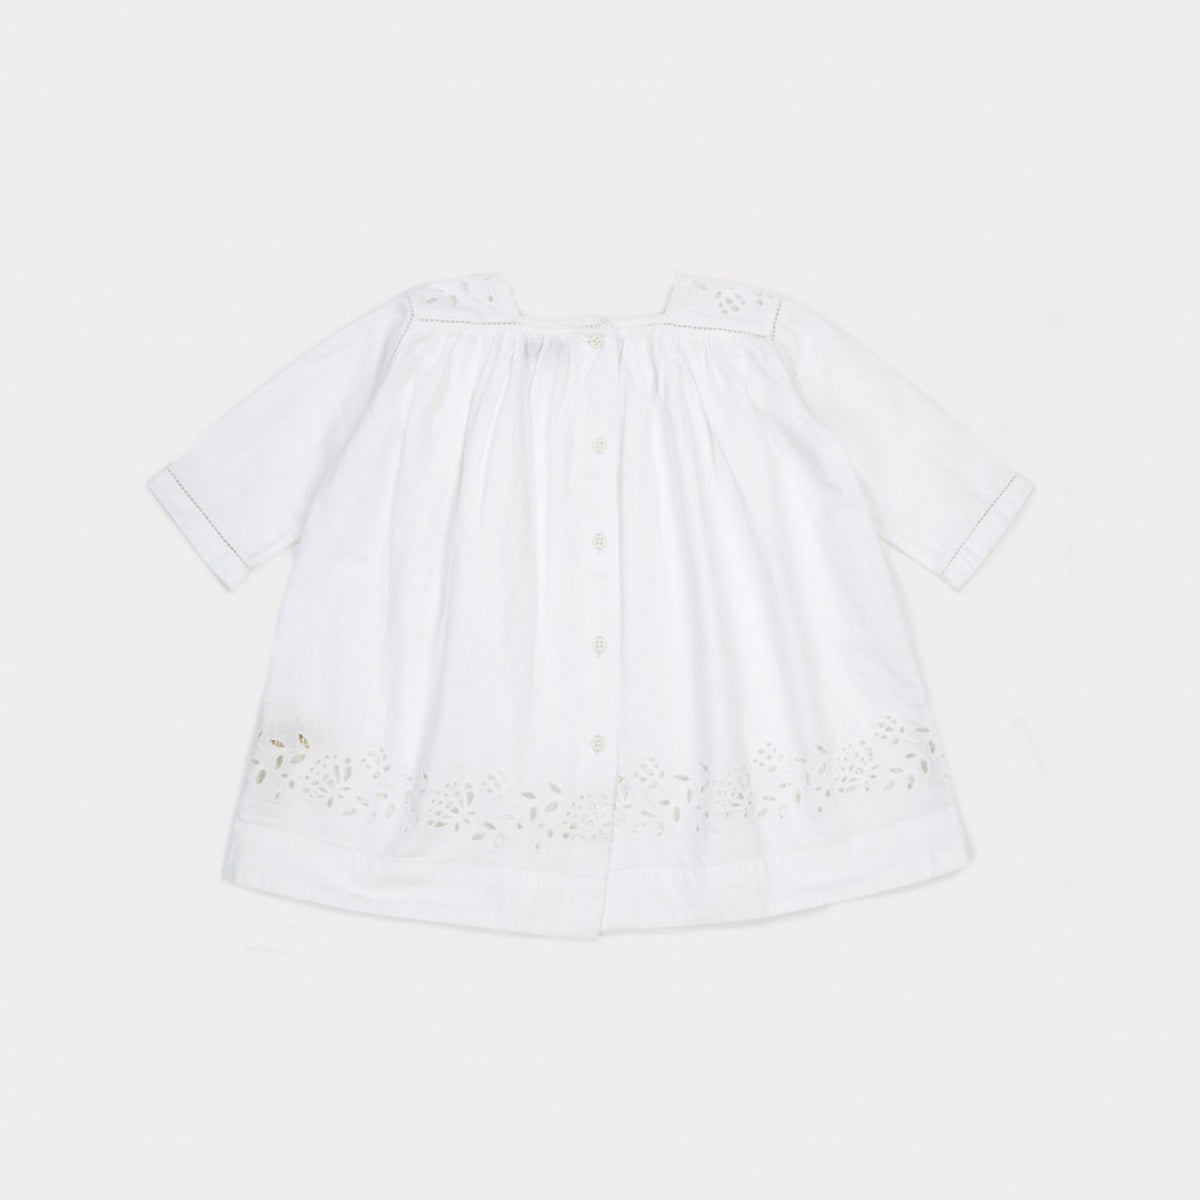 Caramel London Claire Baby Girl's Dress in White | BIEN BIEN